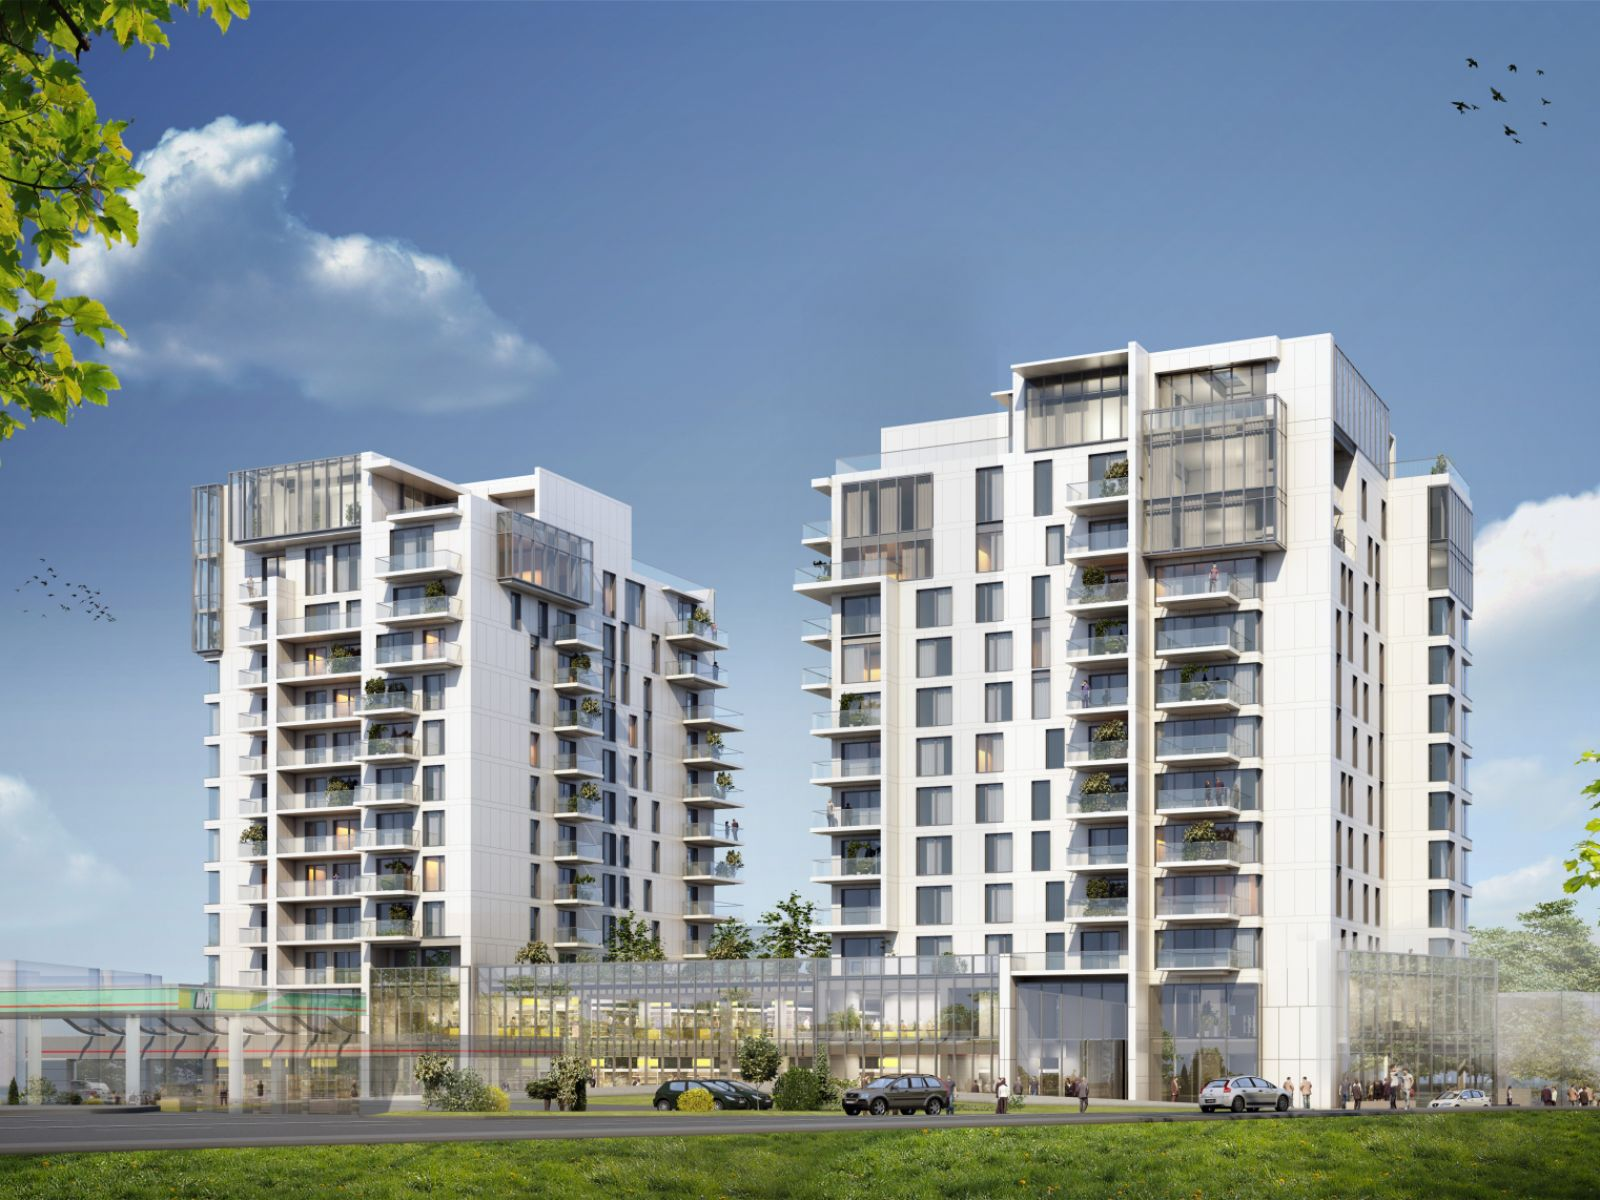 One Herăstrău Towers, on ZF cover: the most important residential development in Herăstrău, to be completed this year